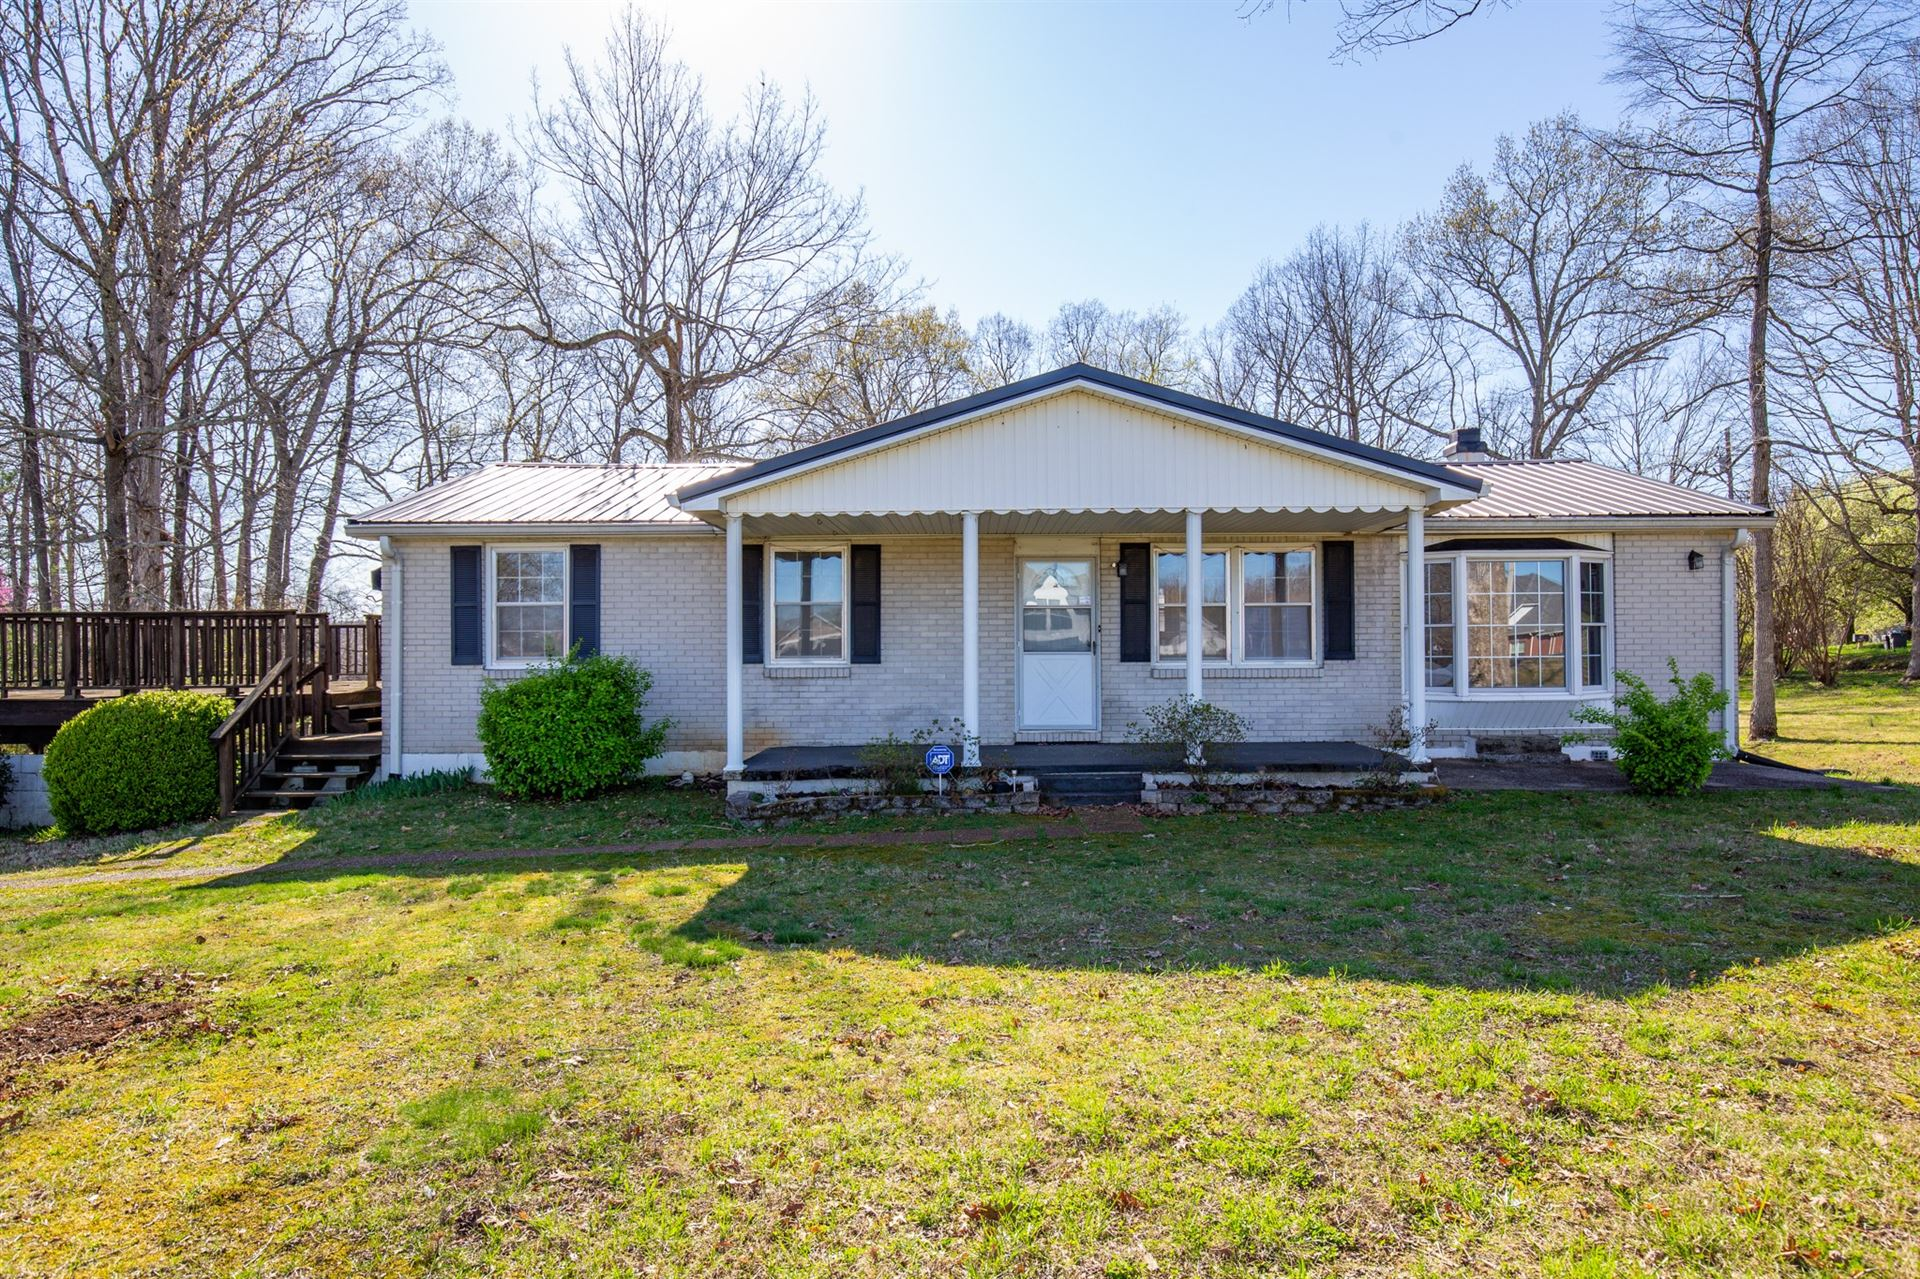 1200 White Bluff Rd, White Bluff, TN 37187 - MLS#: 2250750